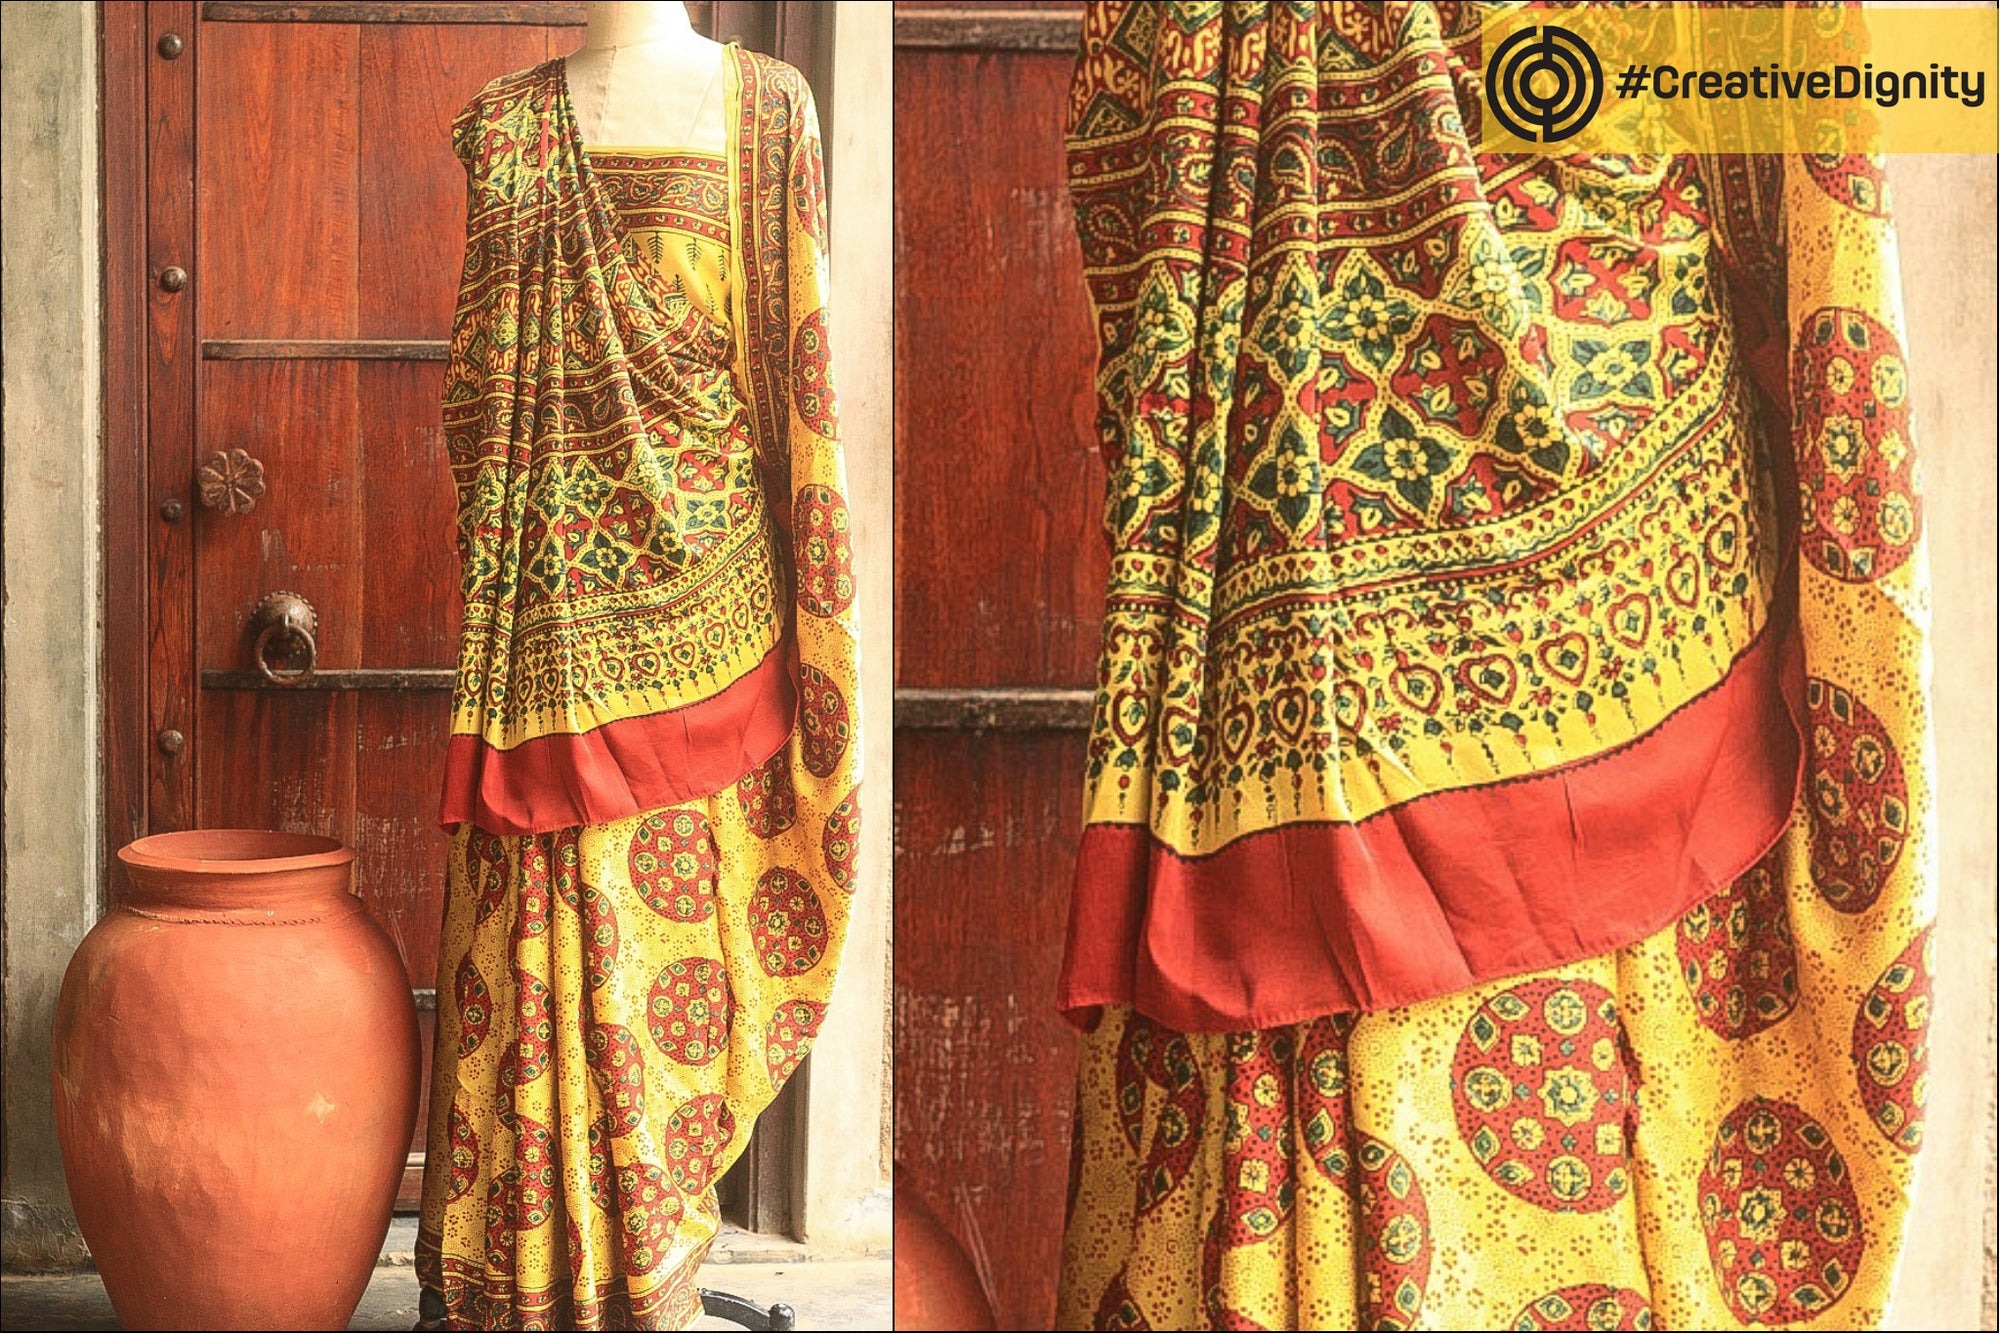 Special Modal Silk Ajrakh Block Print Natural Dyed Saree by Nasir Ismail Khatri